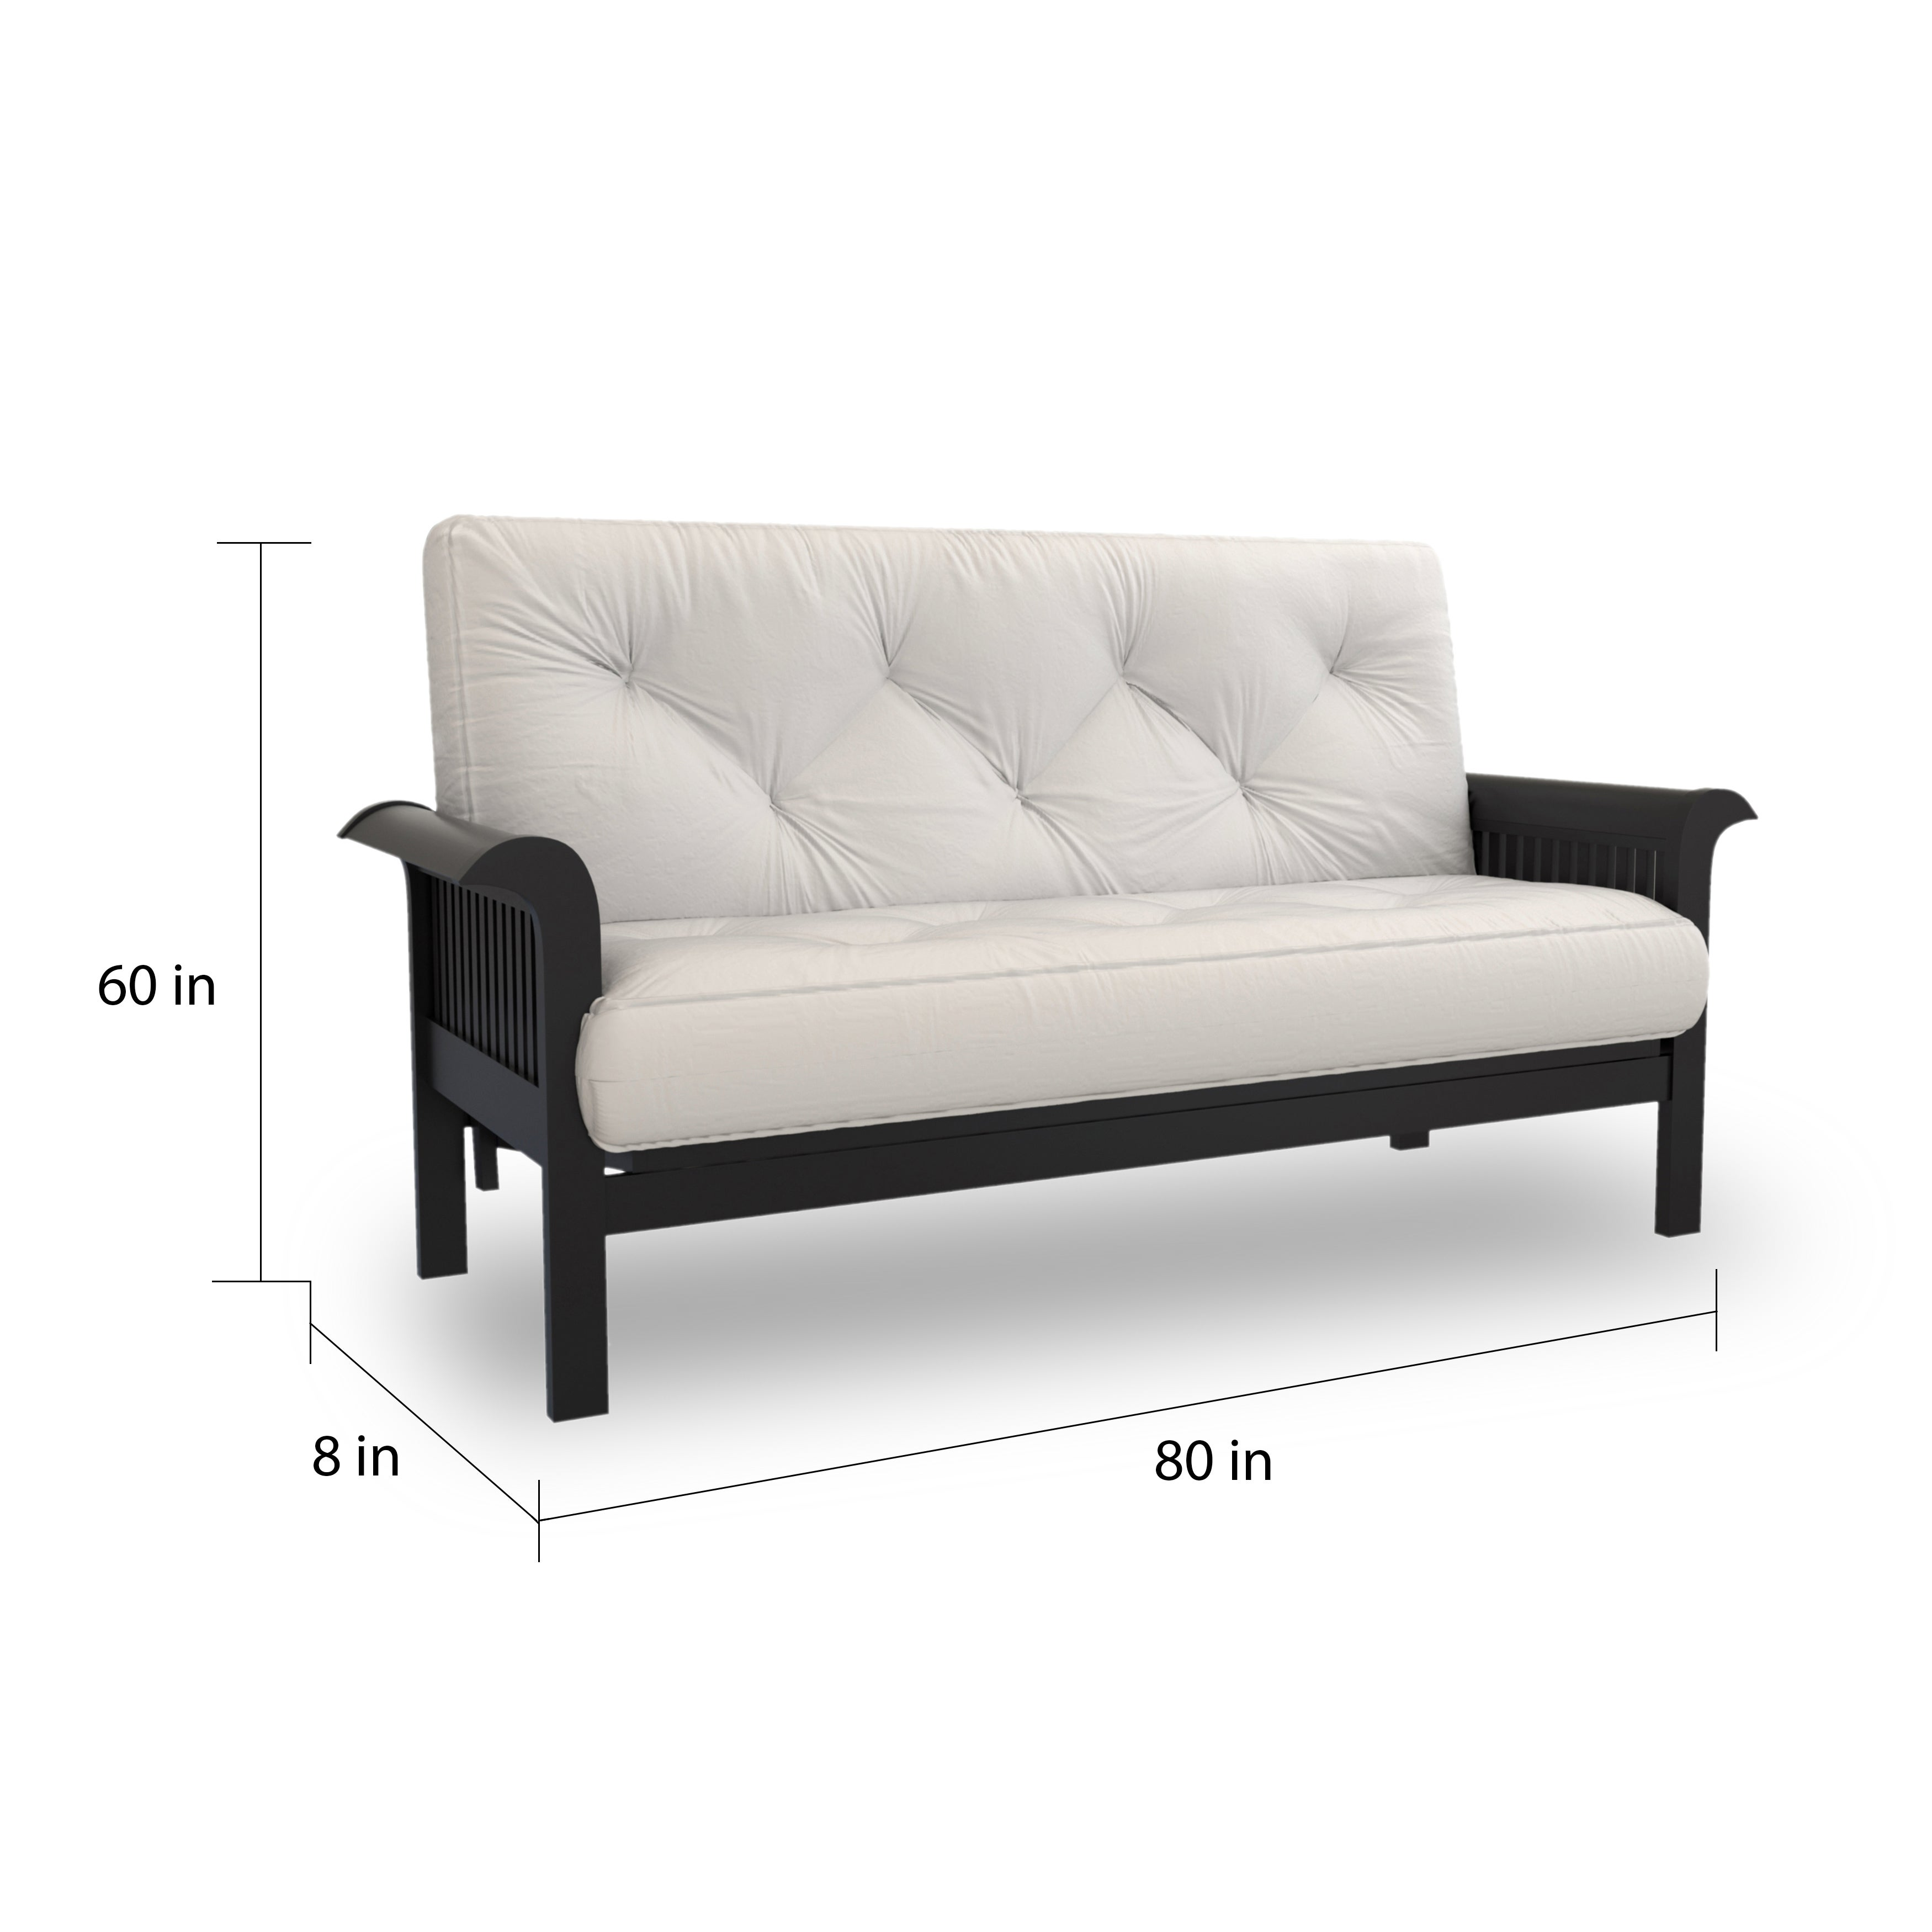 Clay Alder Home Owsley Queen Size Tufted 12 Inch Futon Mattress On Free Shipping Today Com 20254411